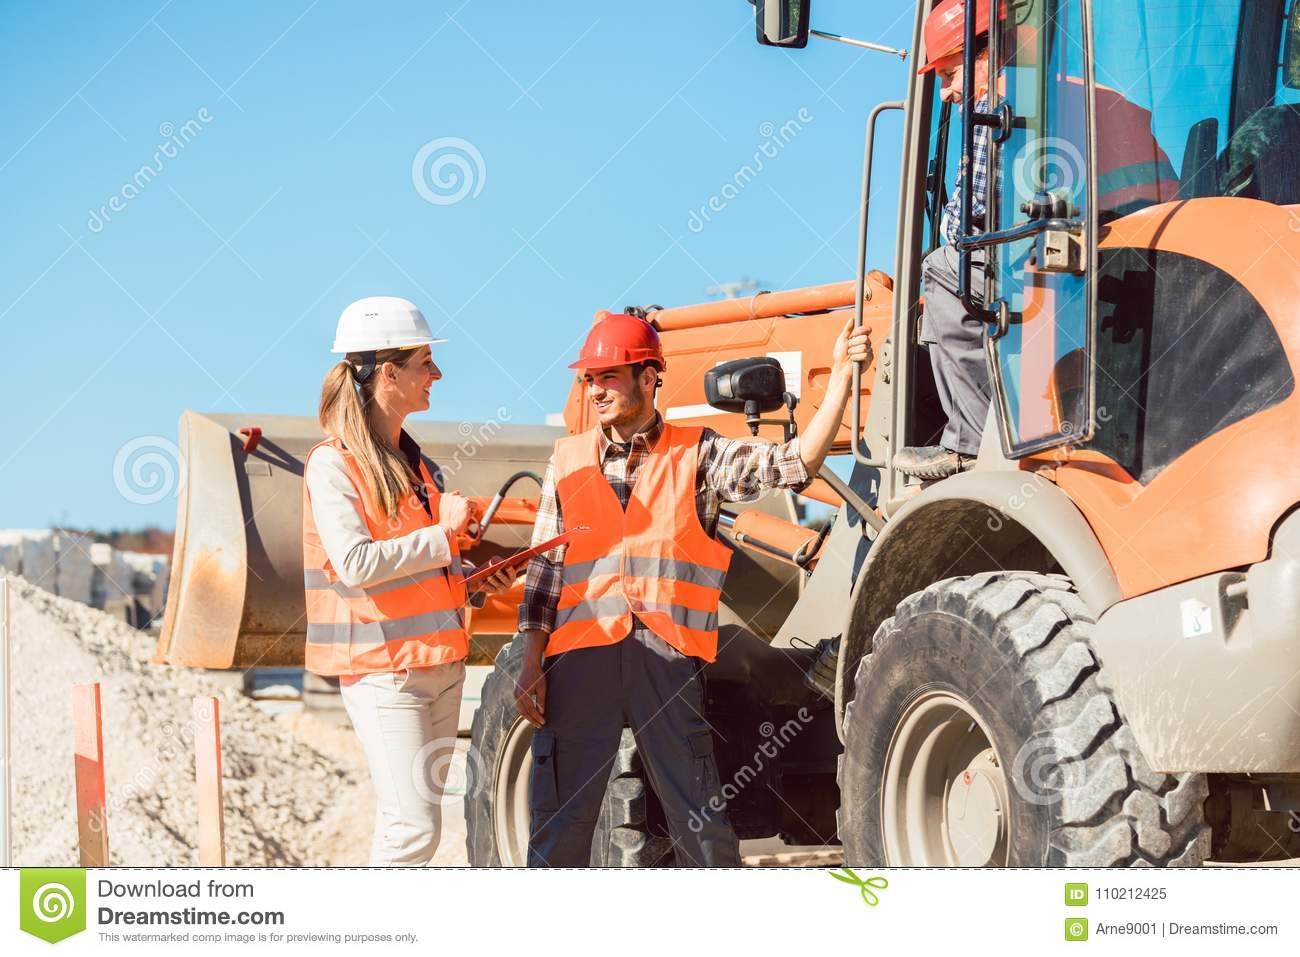 Civil Engineer And Worker Discussion On Road Construction